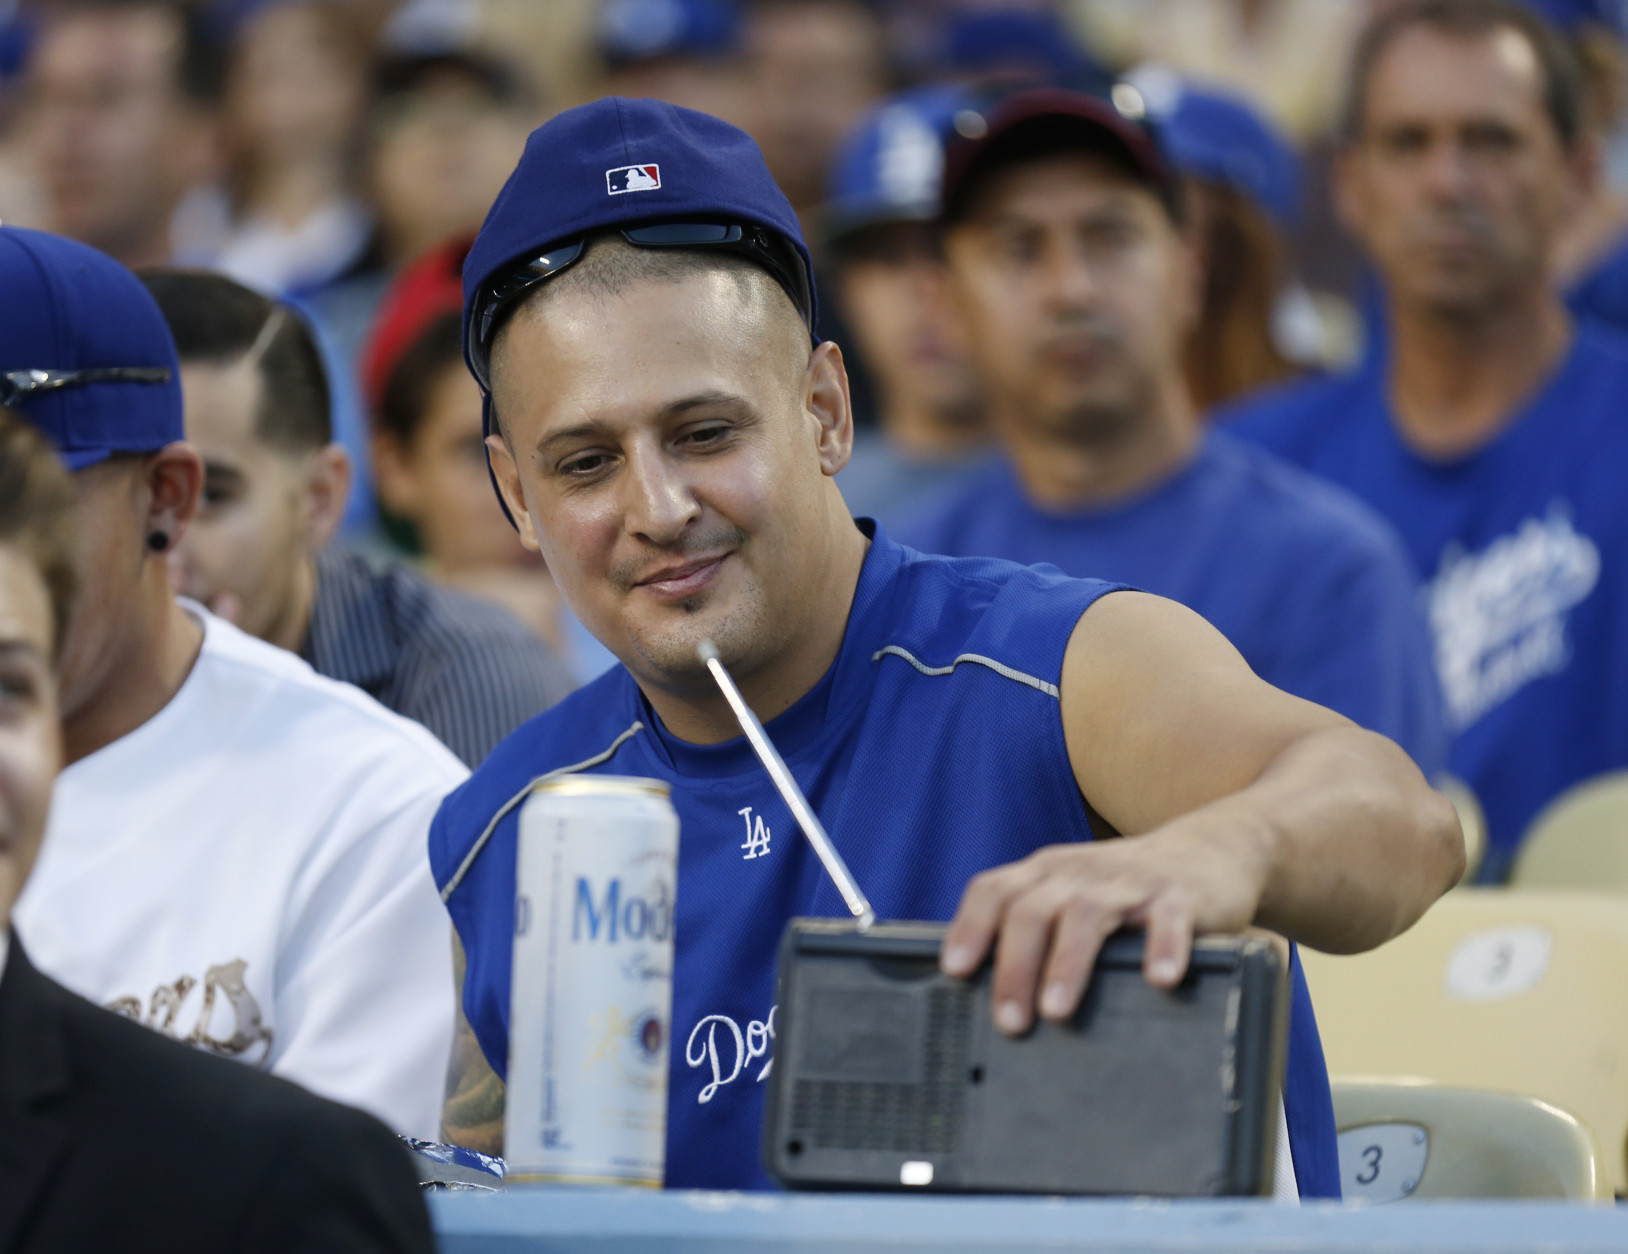 A Los Angeles Dodgers fan listens to announcer Vin Scully on a radio while attending a baseball game at Dodger Stadium against the Los Angeles Angels, Monday, August 4, 2014, in Los Angeles. (AP Photo/Danny Moloshok)